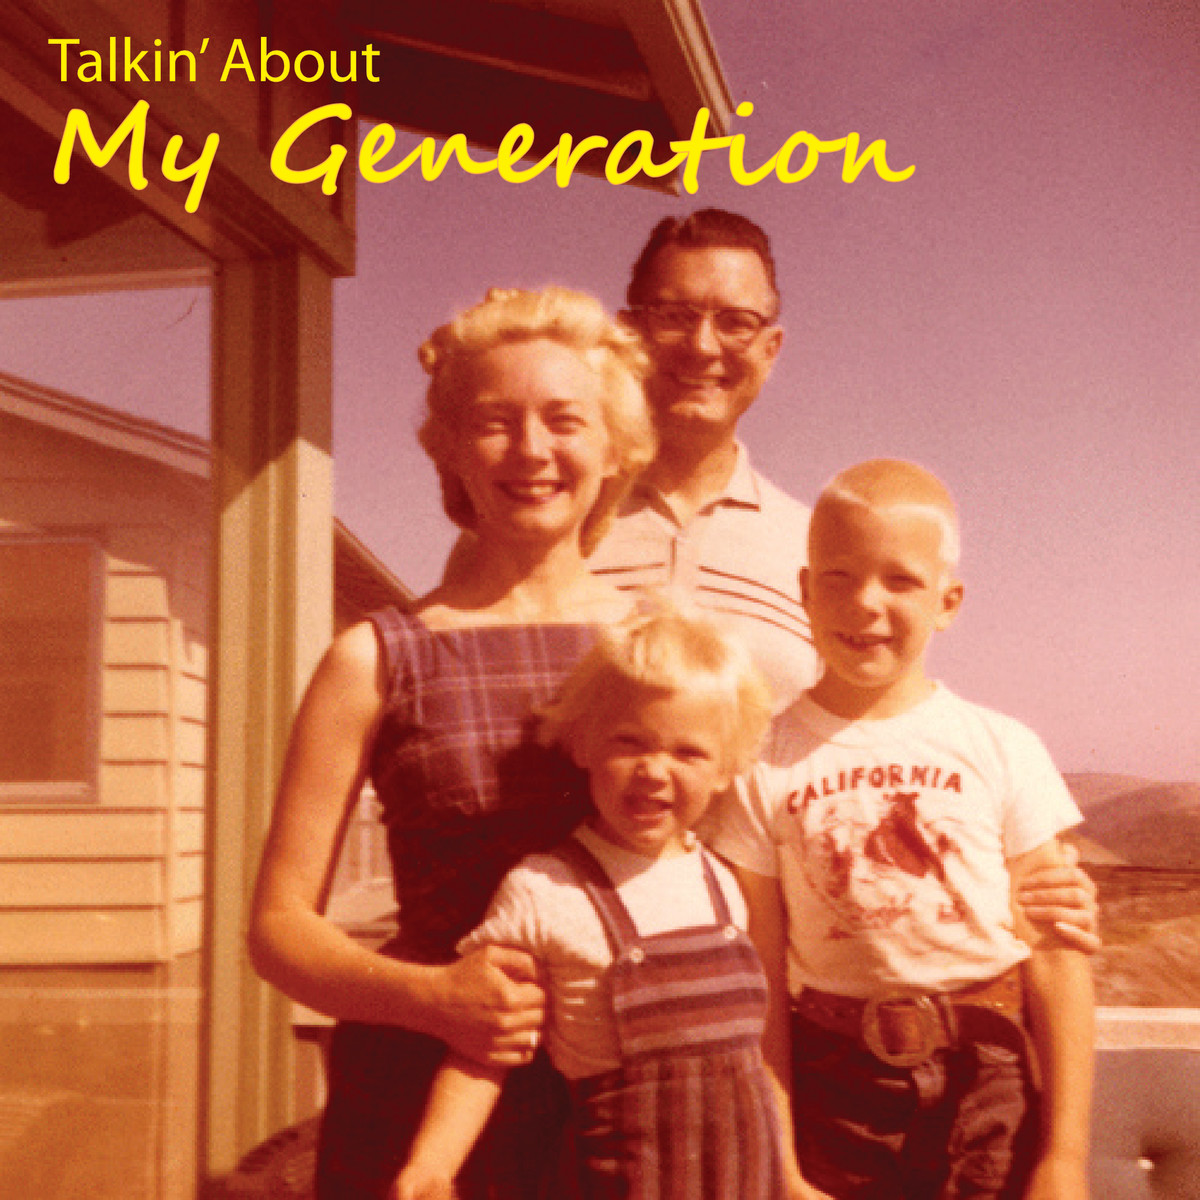 OK Boomer—Talkin' About My Generation